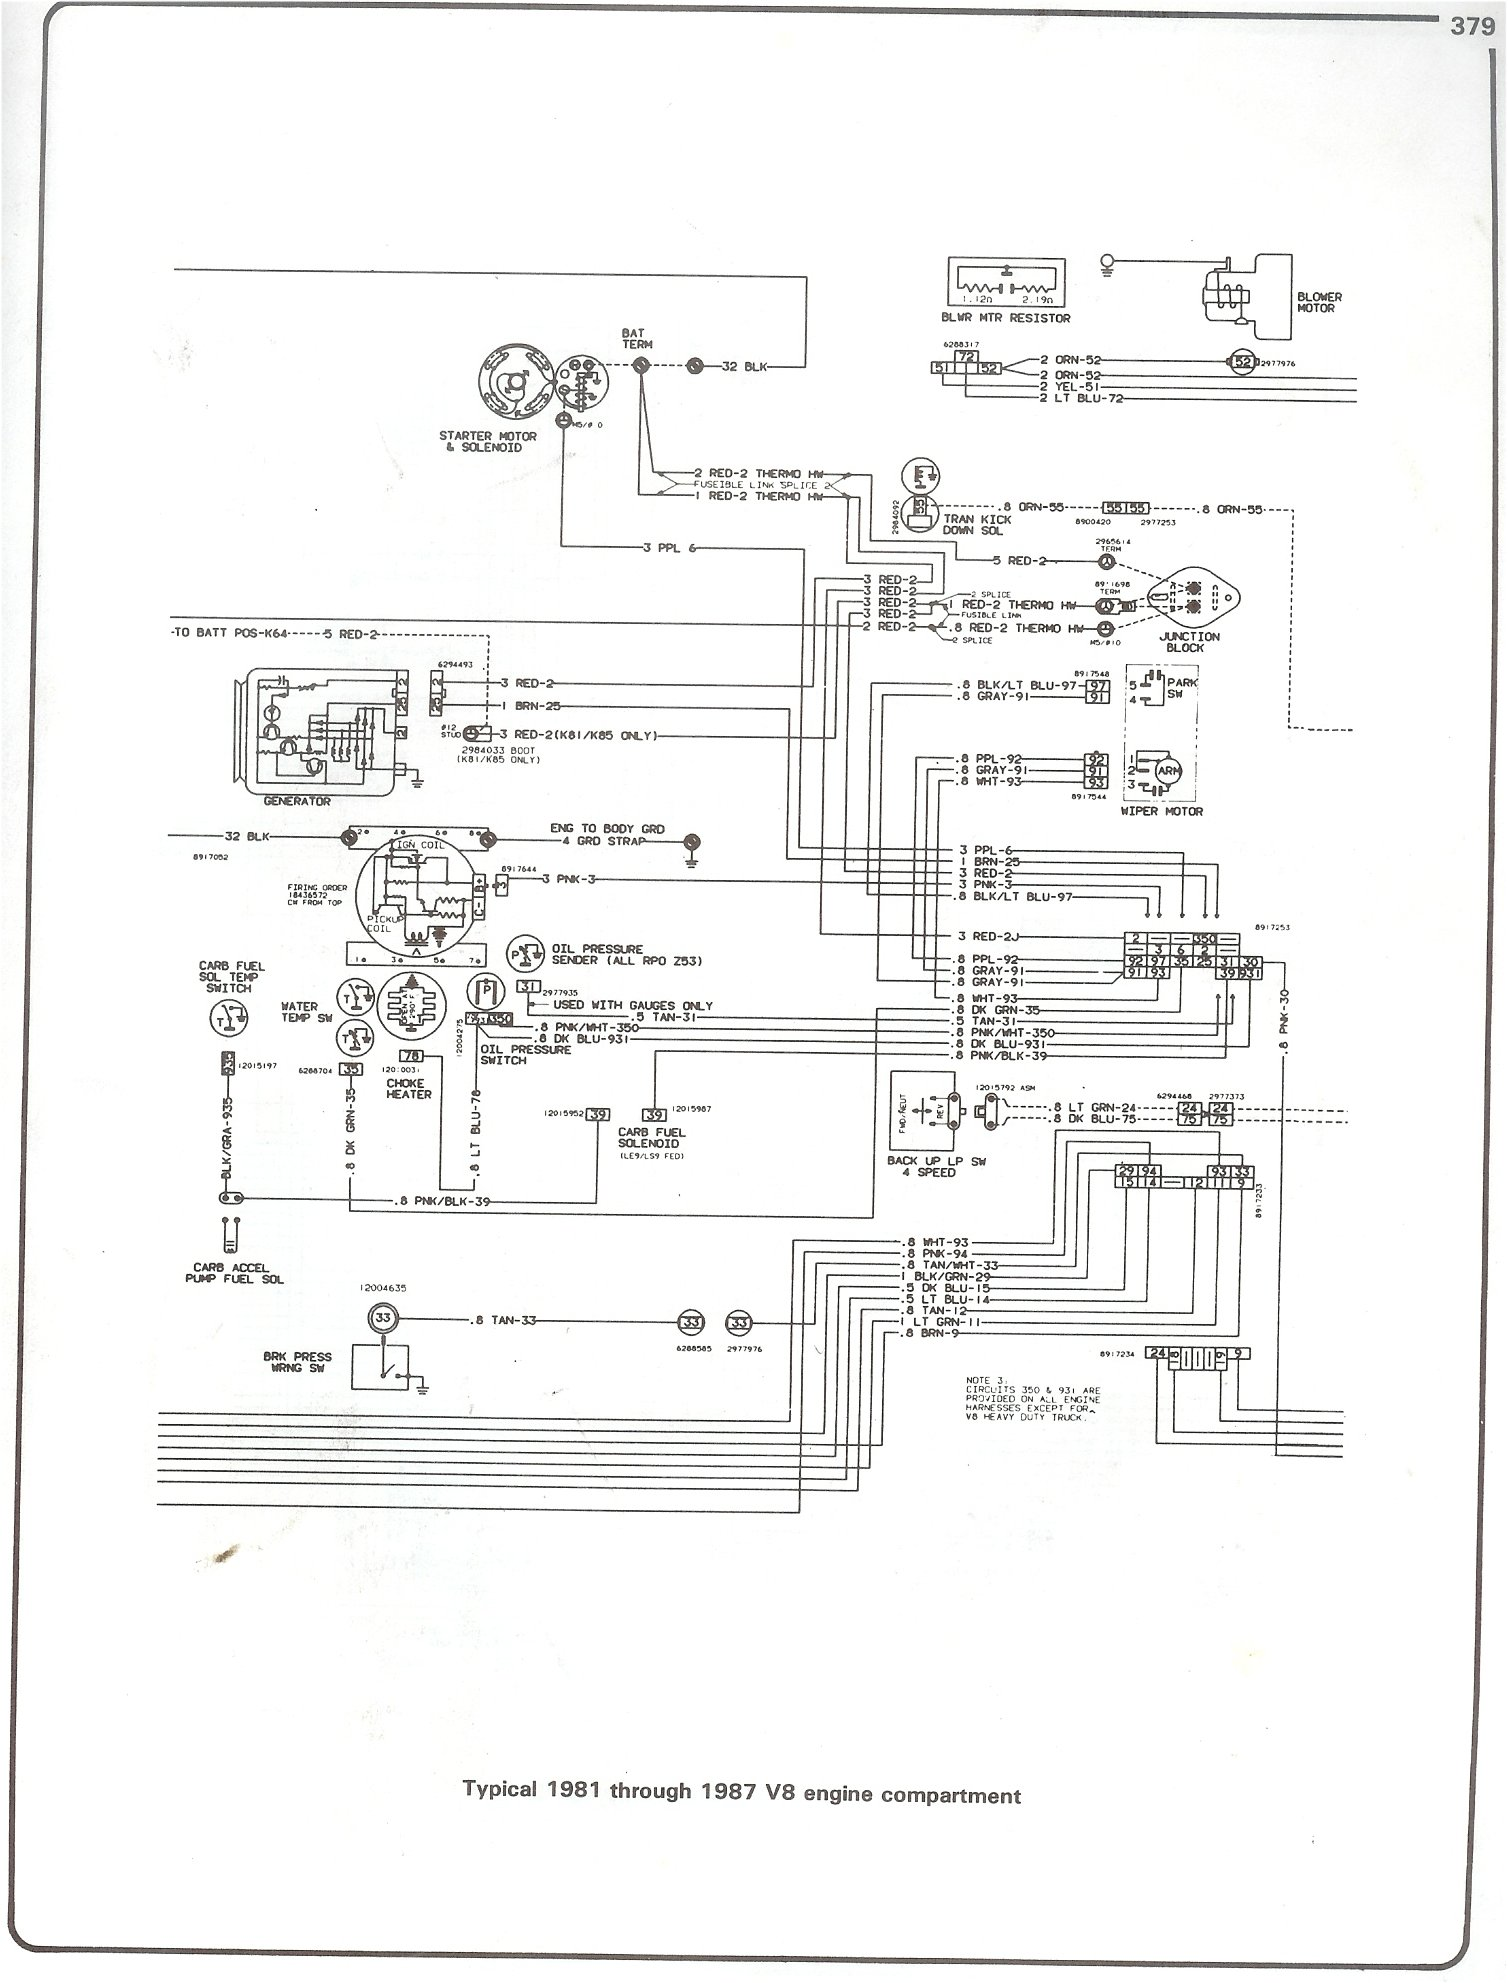 81 87_V8_engine complete 73 87 wiring diagrams 1986 chevy truck wiring harness at alyssarenee.co